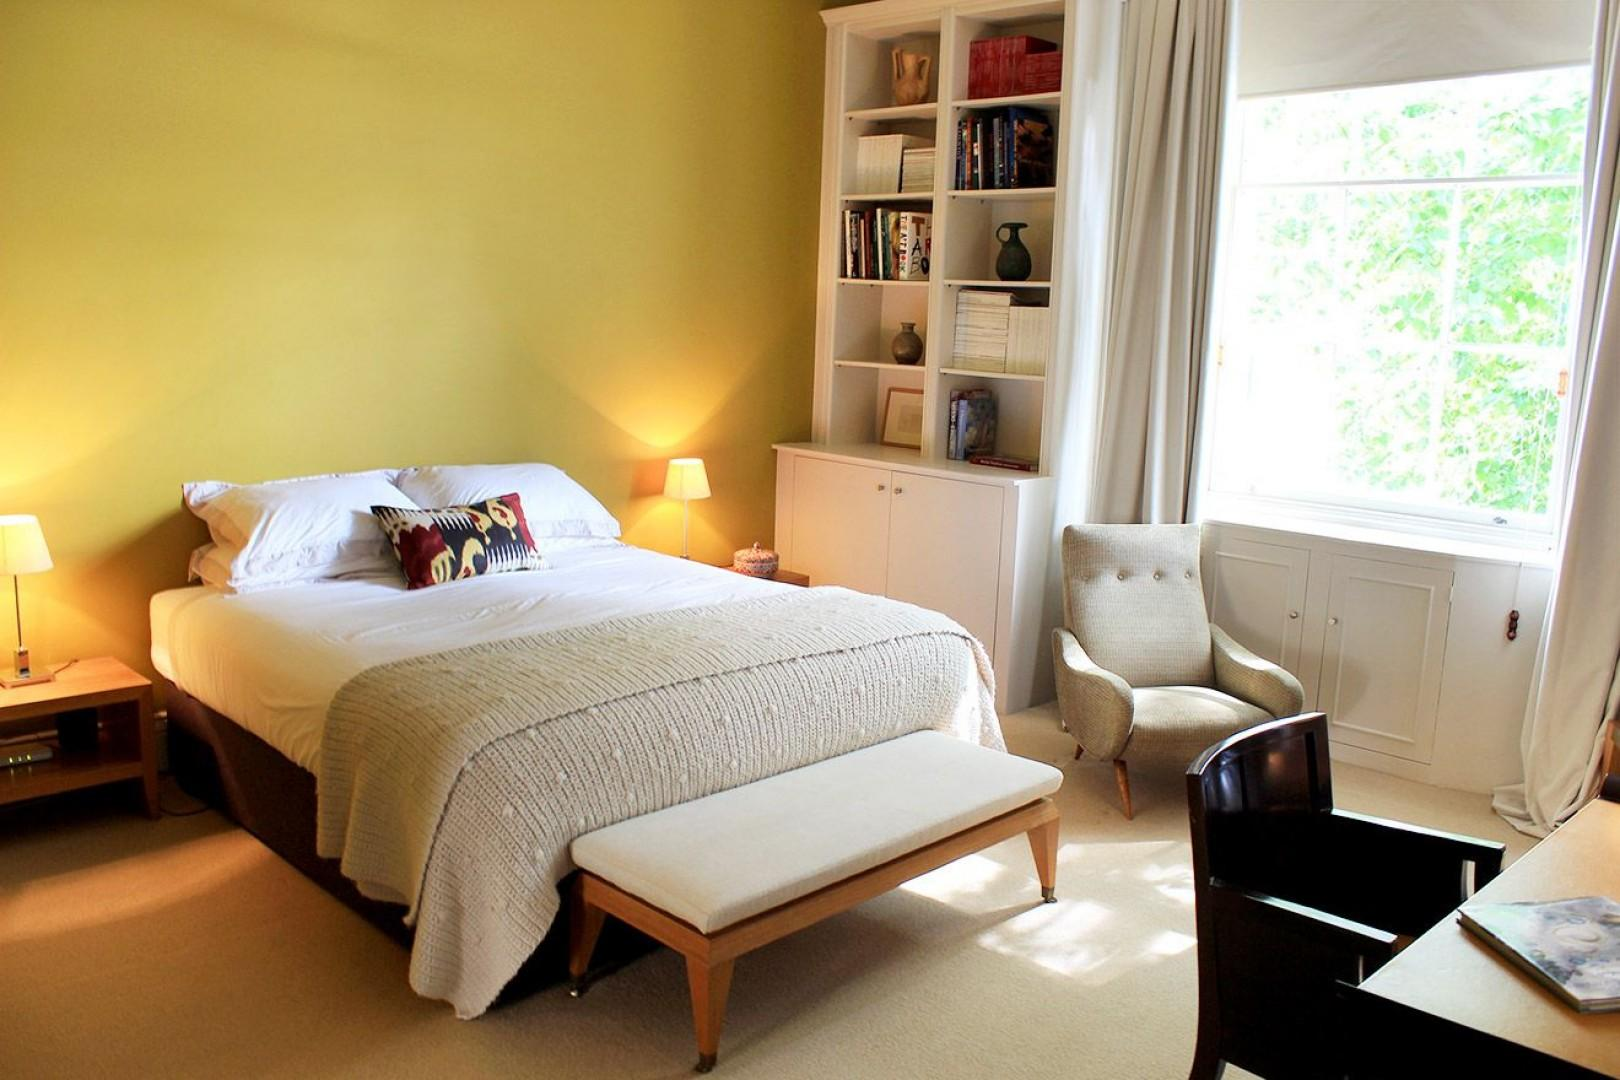 Gorgeous bedroom 1 with comfortable bed and cozy armchair